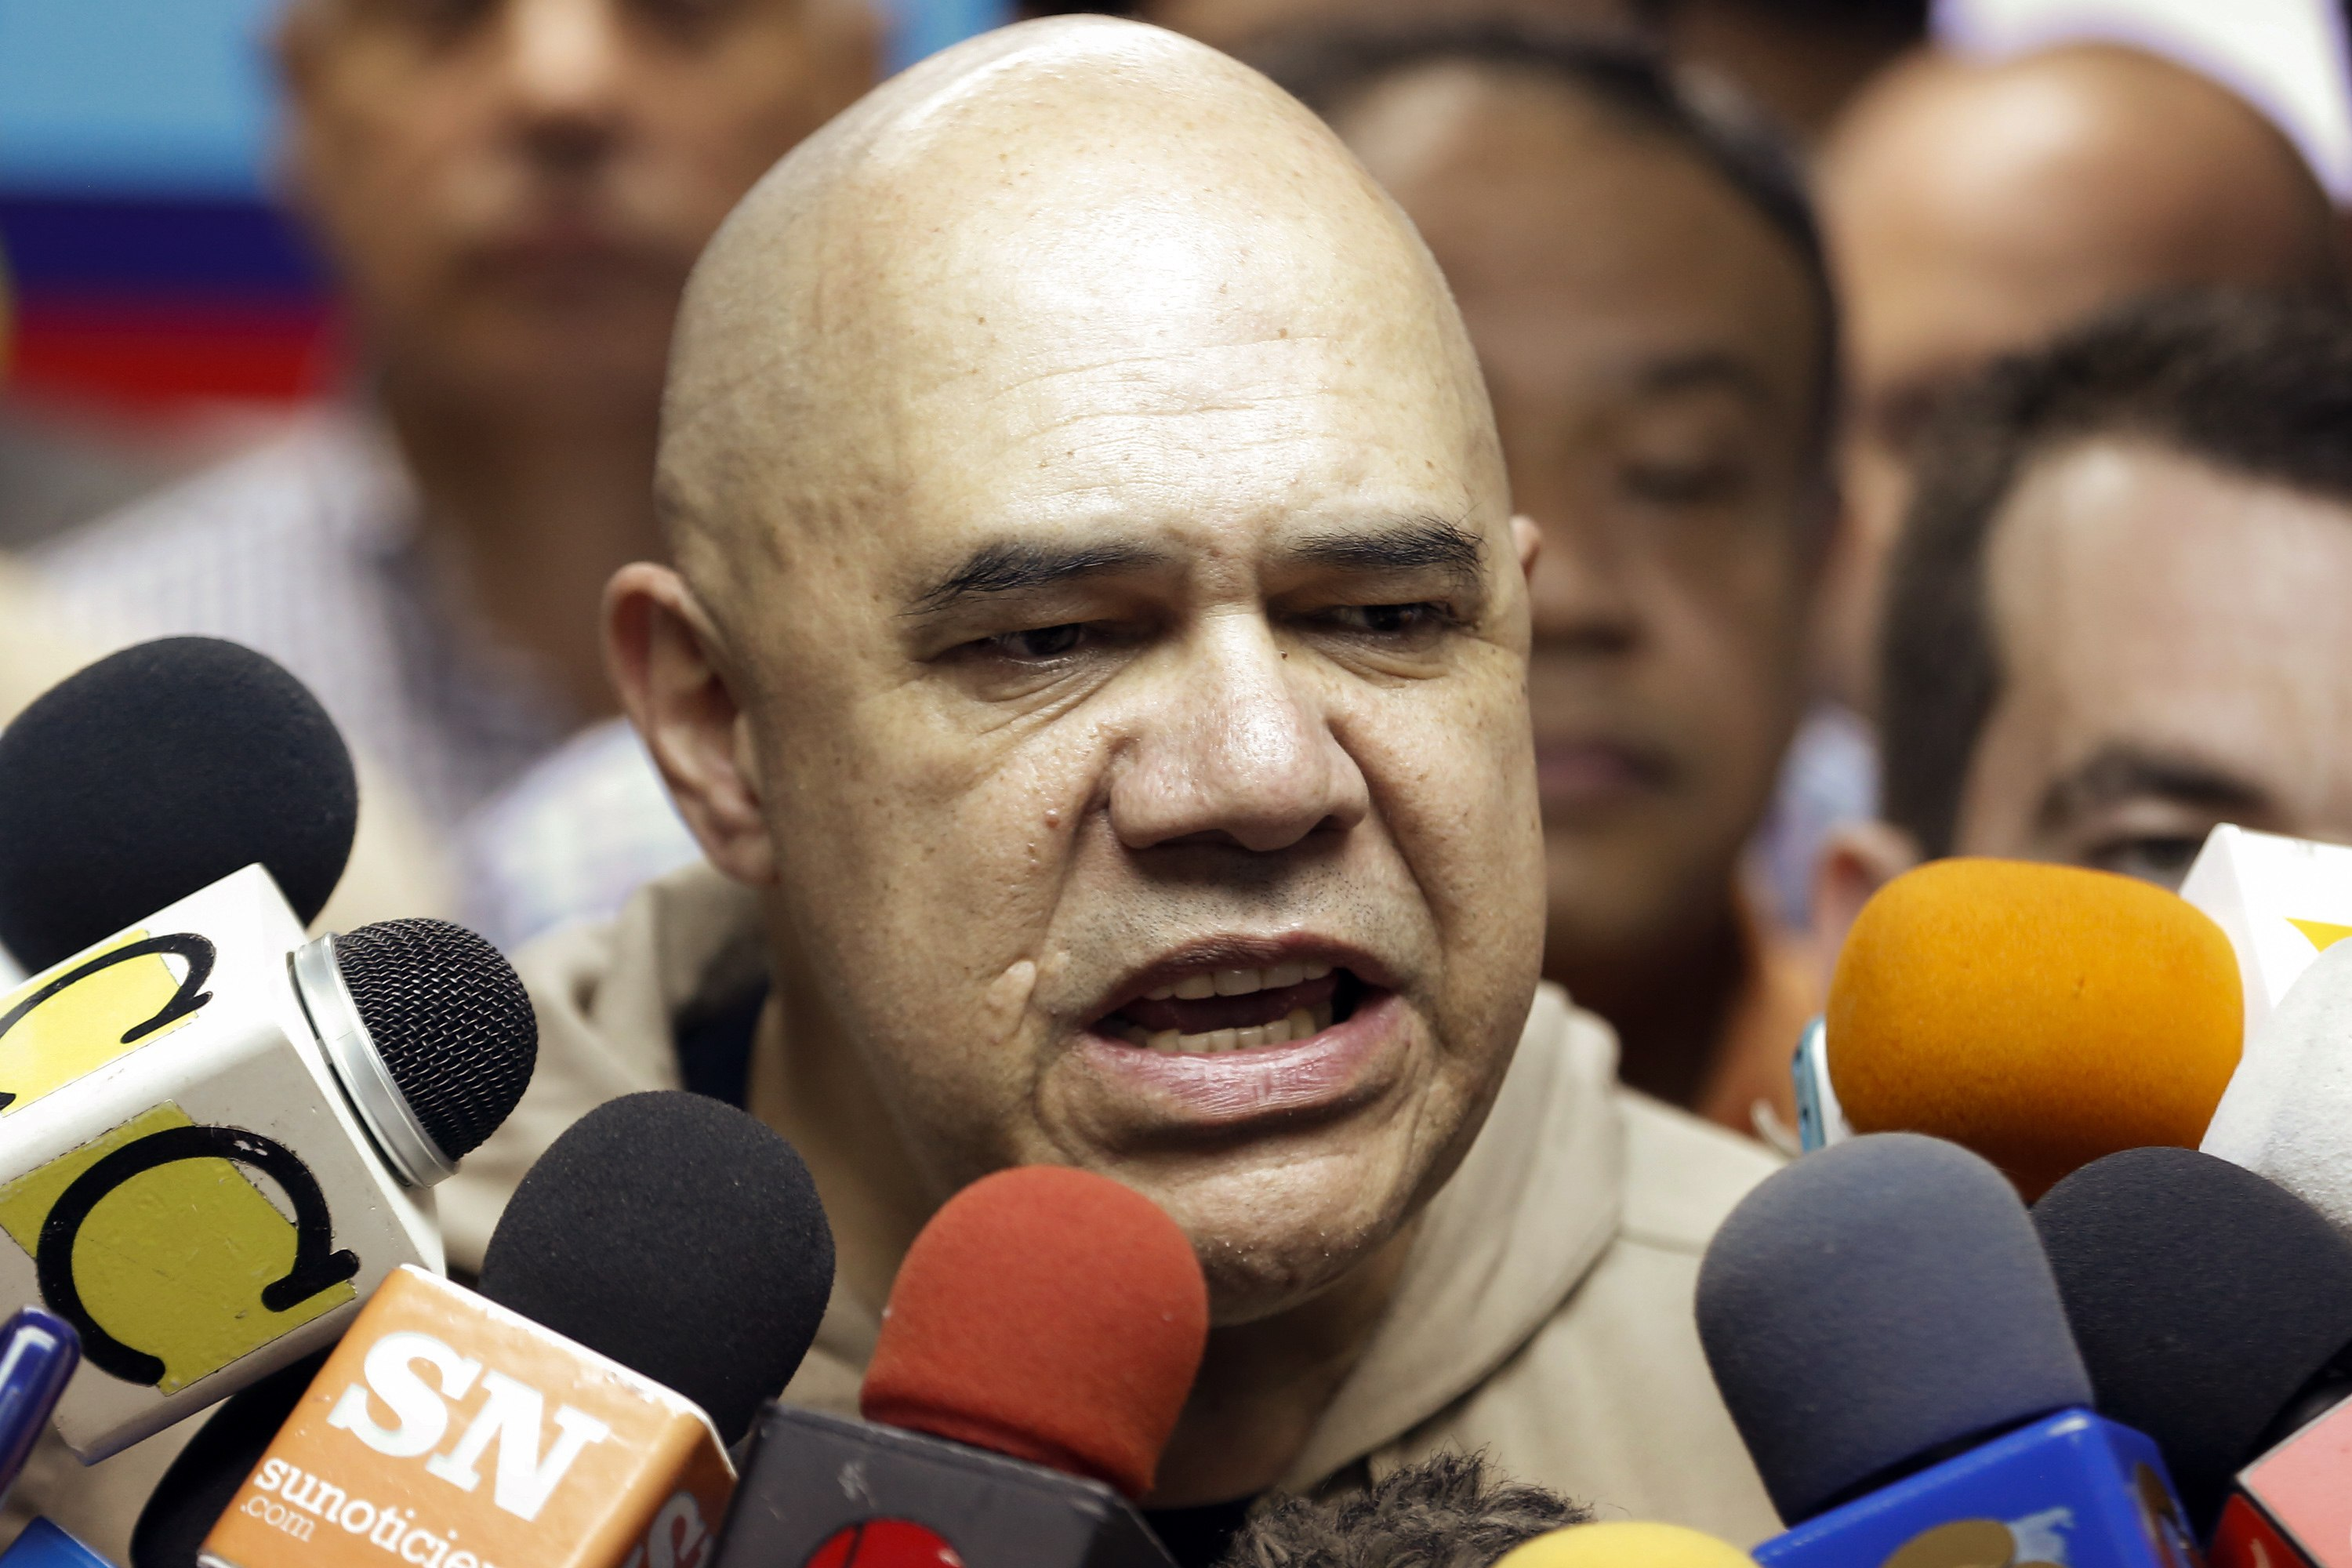 Venezuela arrests opposition mayor accused of coup plot